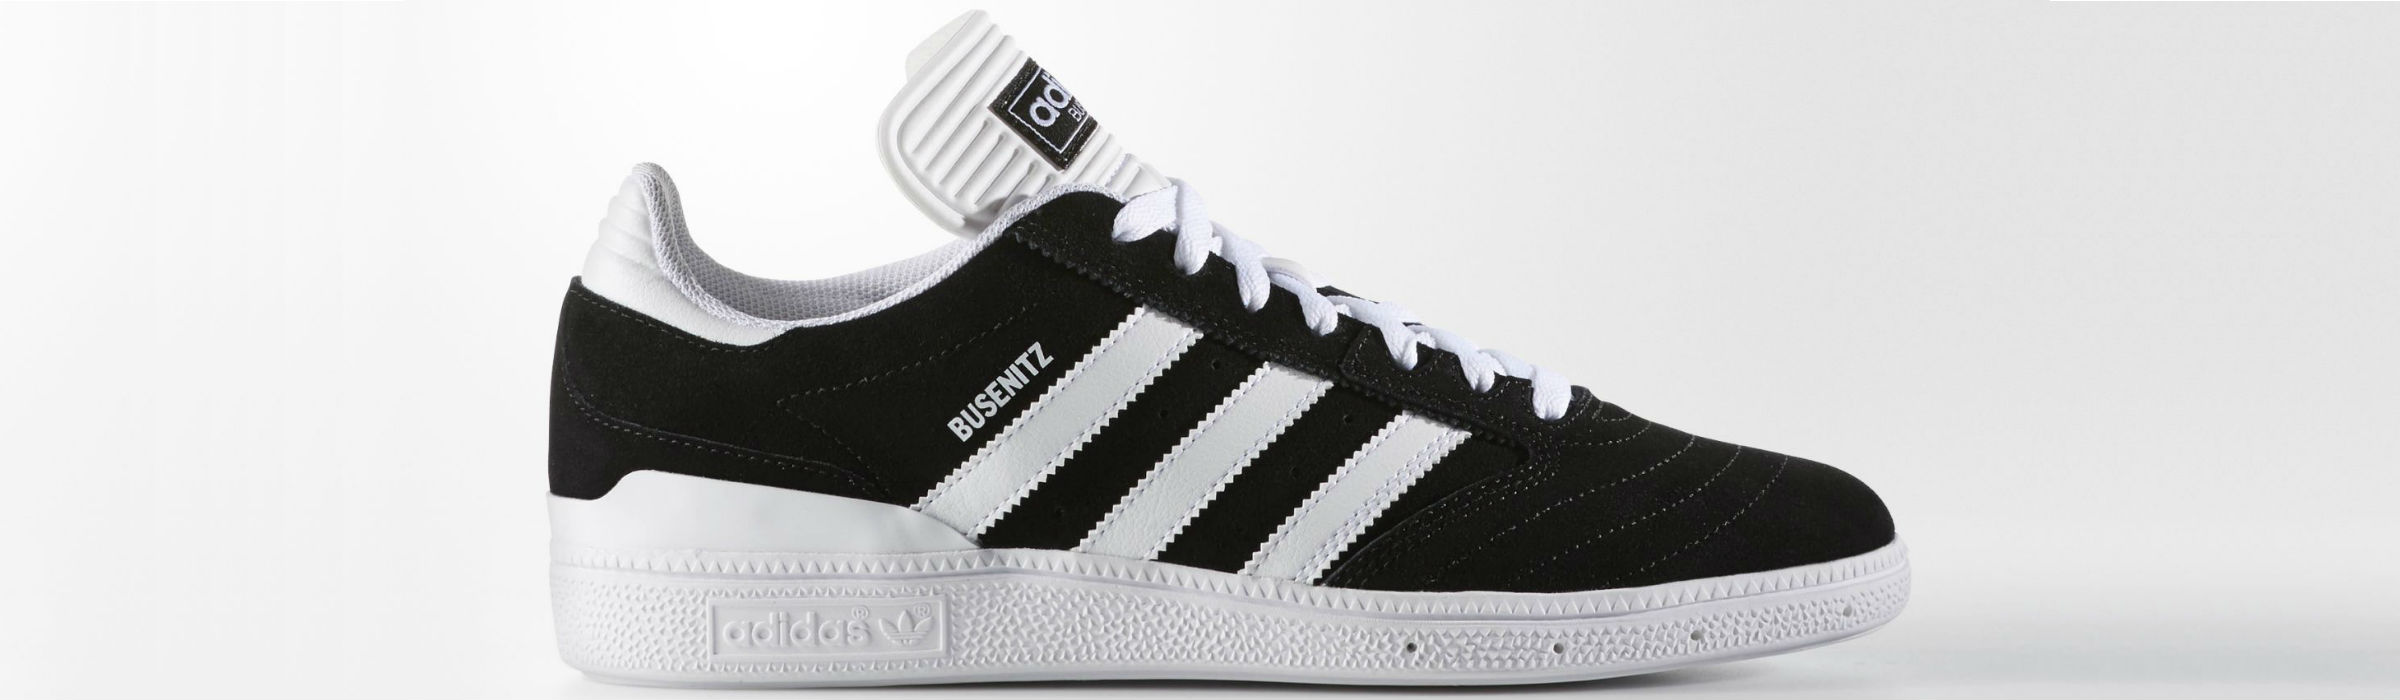 Adidas Busenitz Pro Shoes Core Black Footwear White Full